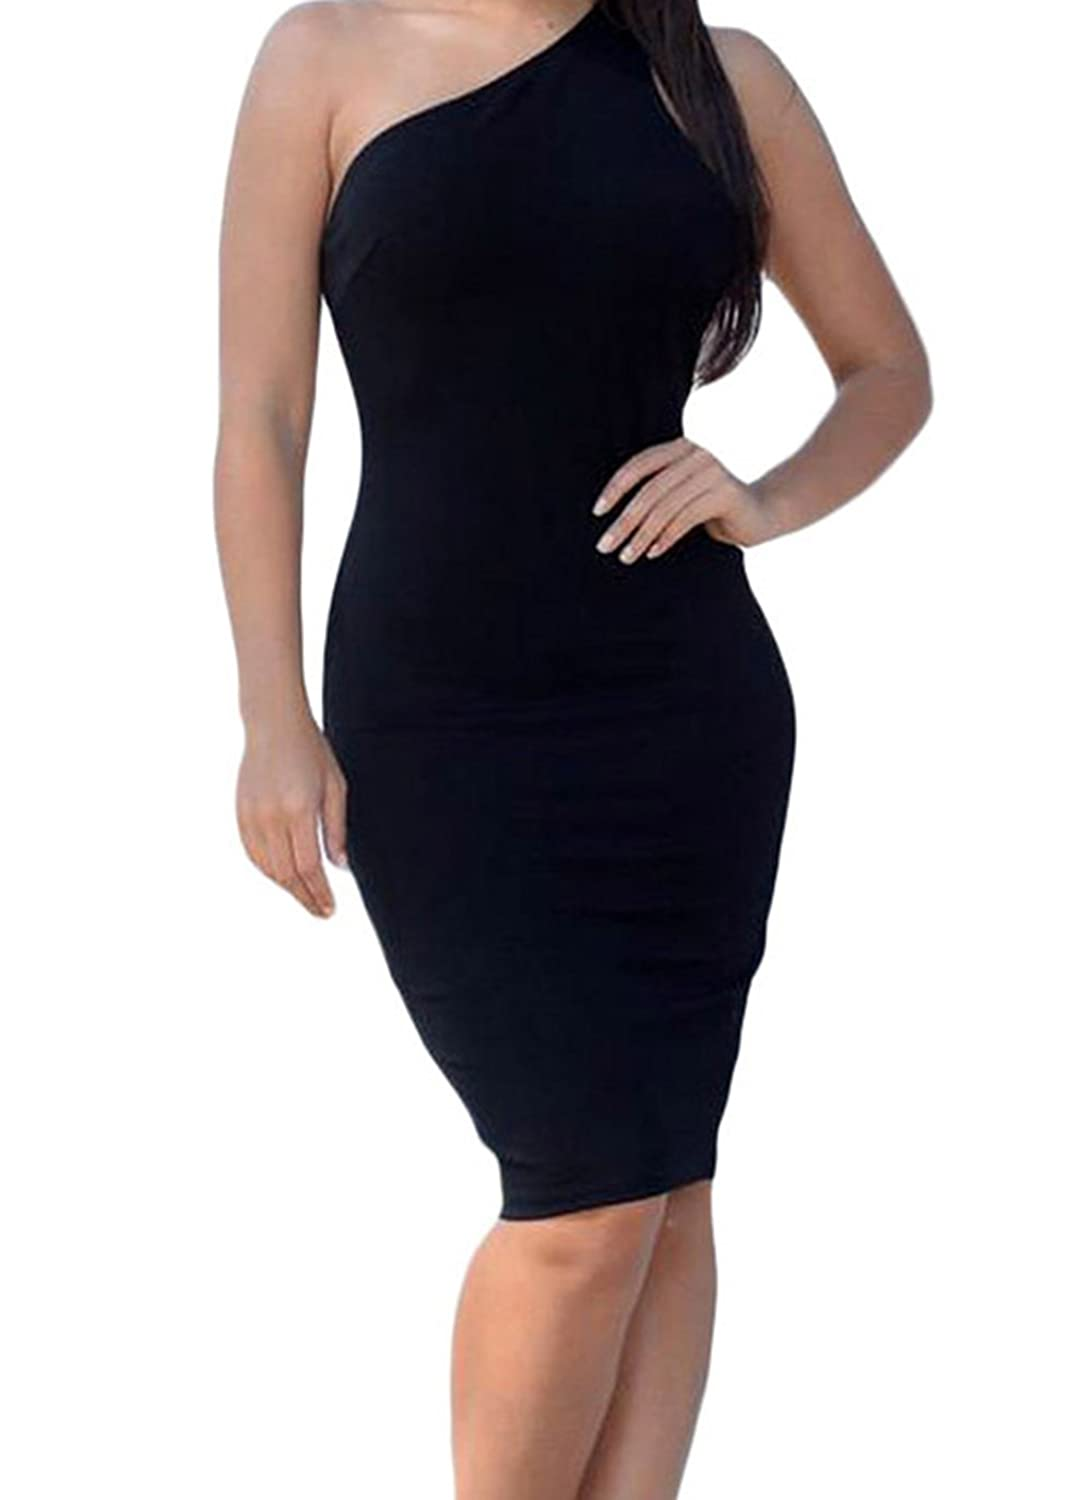 FQHOME Womens Black One Shoulder Strappy Back Bodycon Party Dress